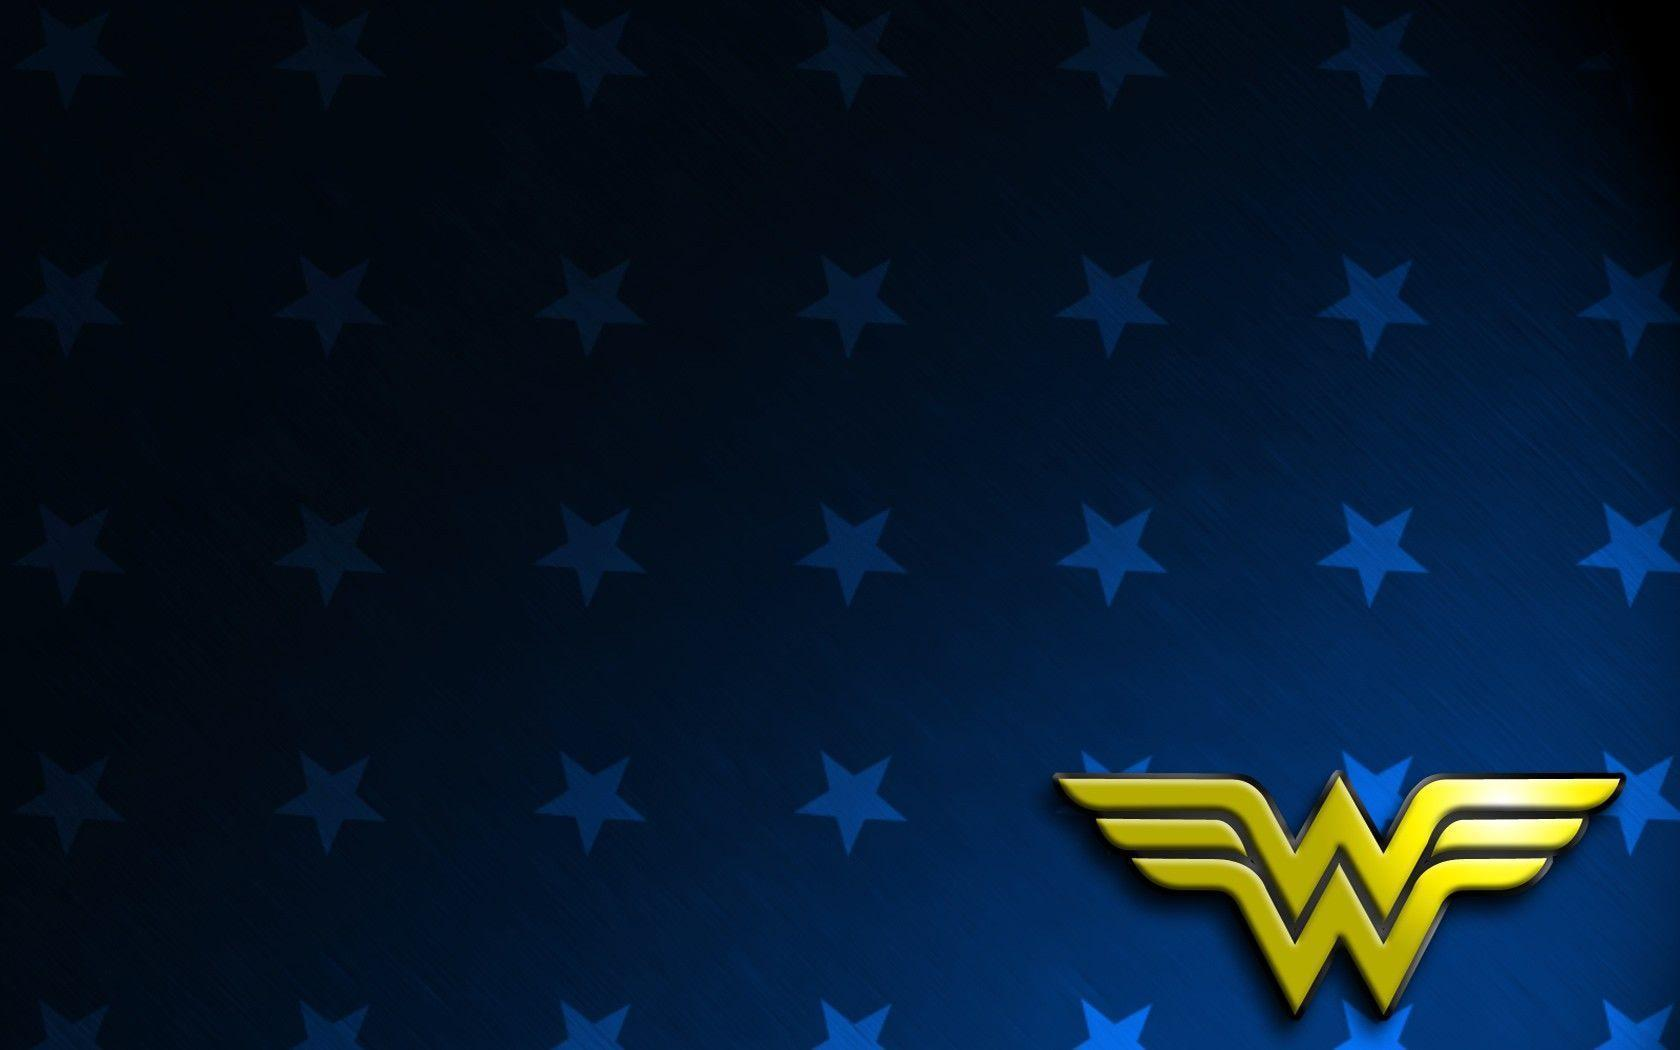 Wonder Woman wallpaper | DC Comics wallpapers